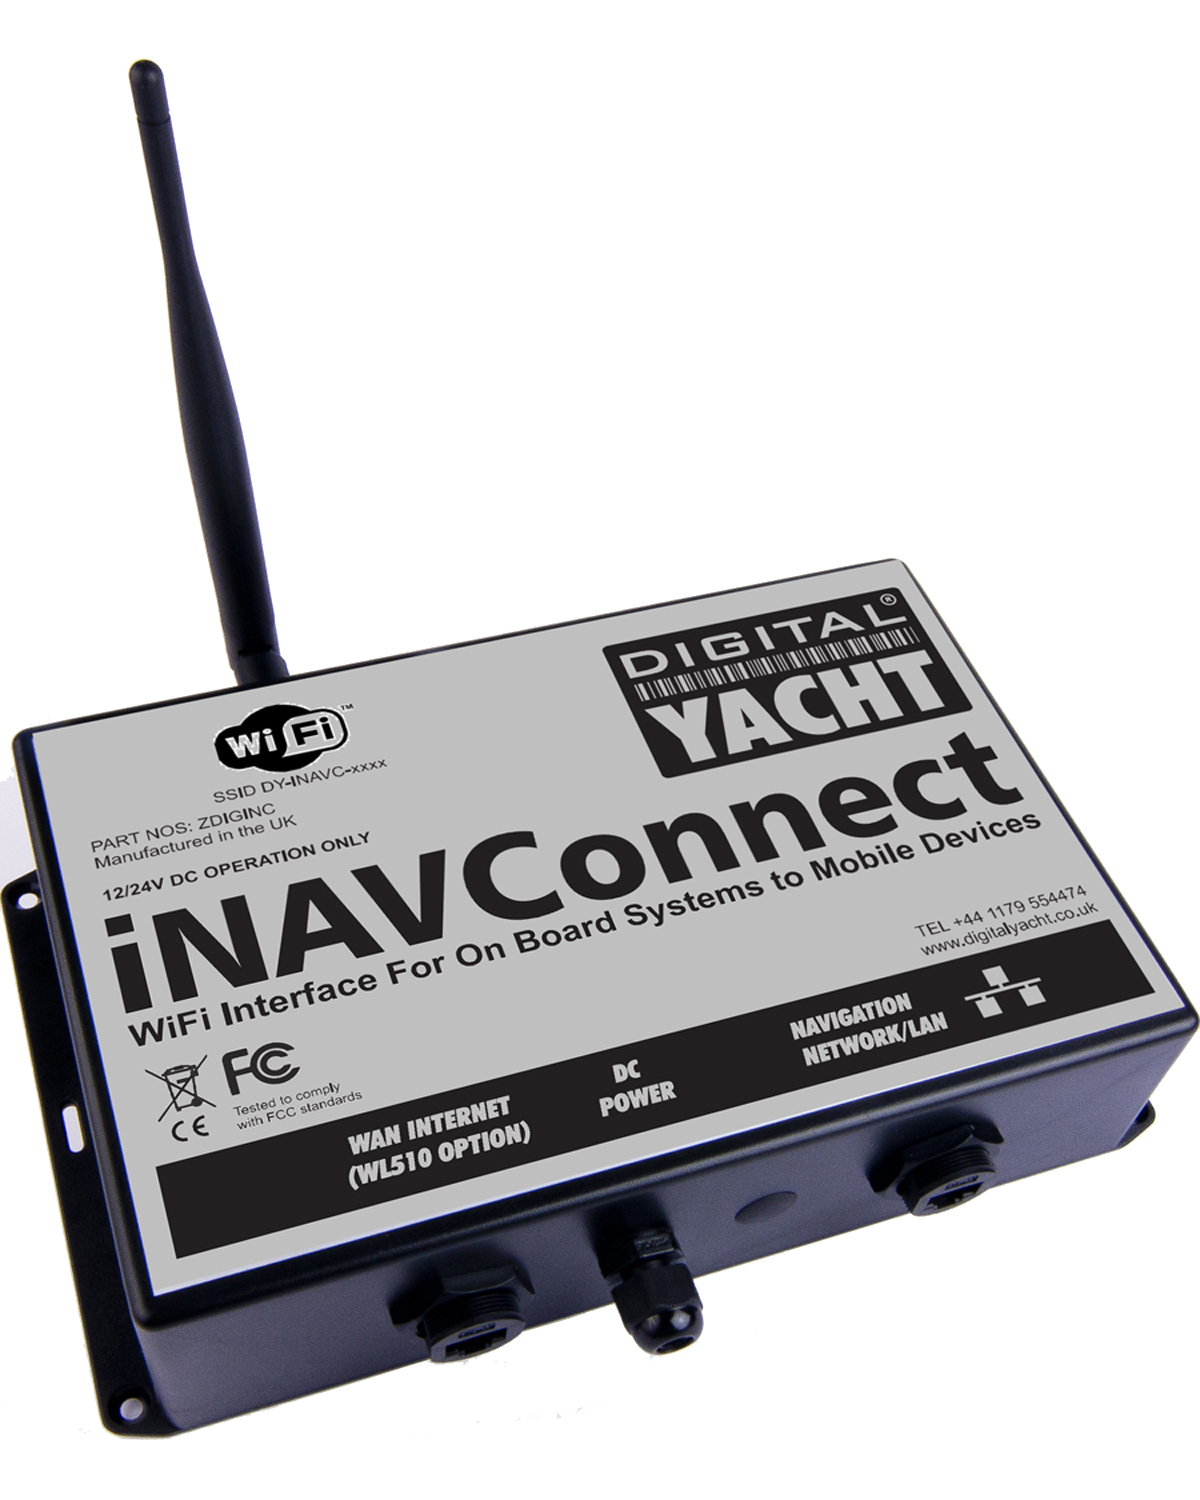 Digital Yacht iNAVconnect wireless wifi router - Aerotrac